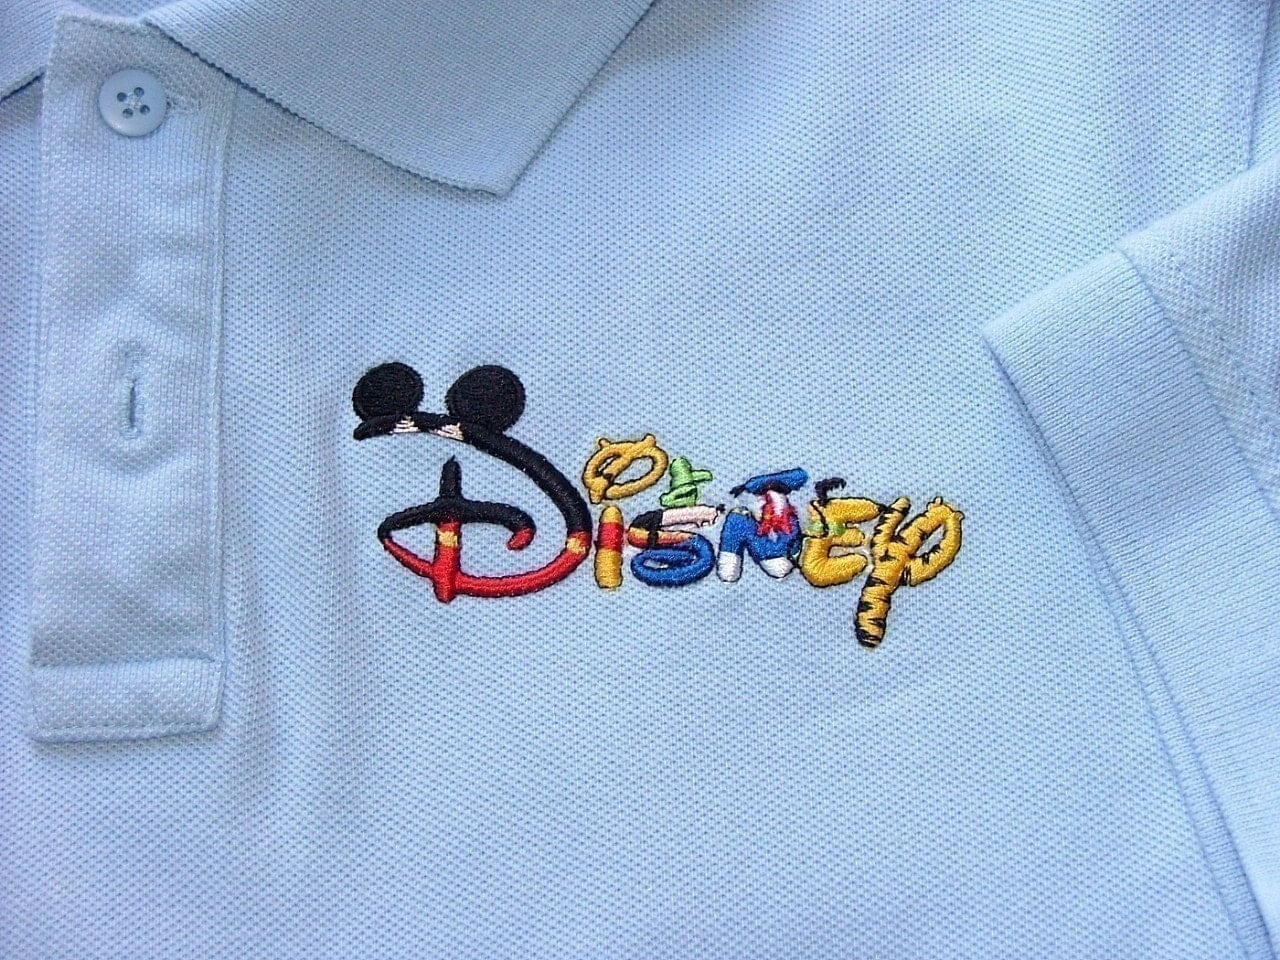 BAY DESIGN DISNEY E EMBROIDERY